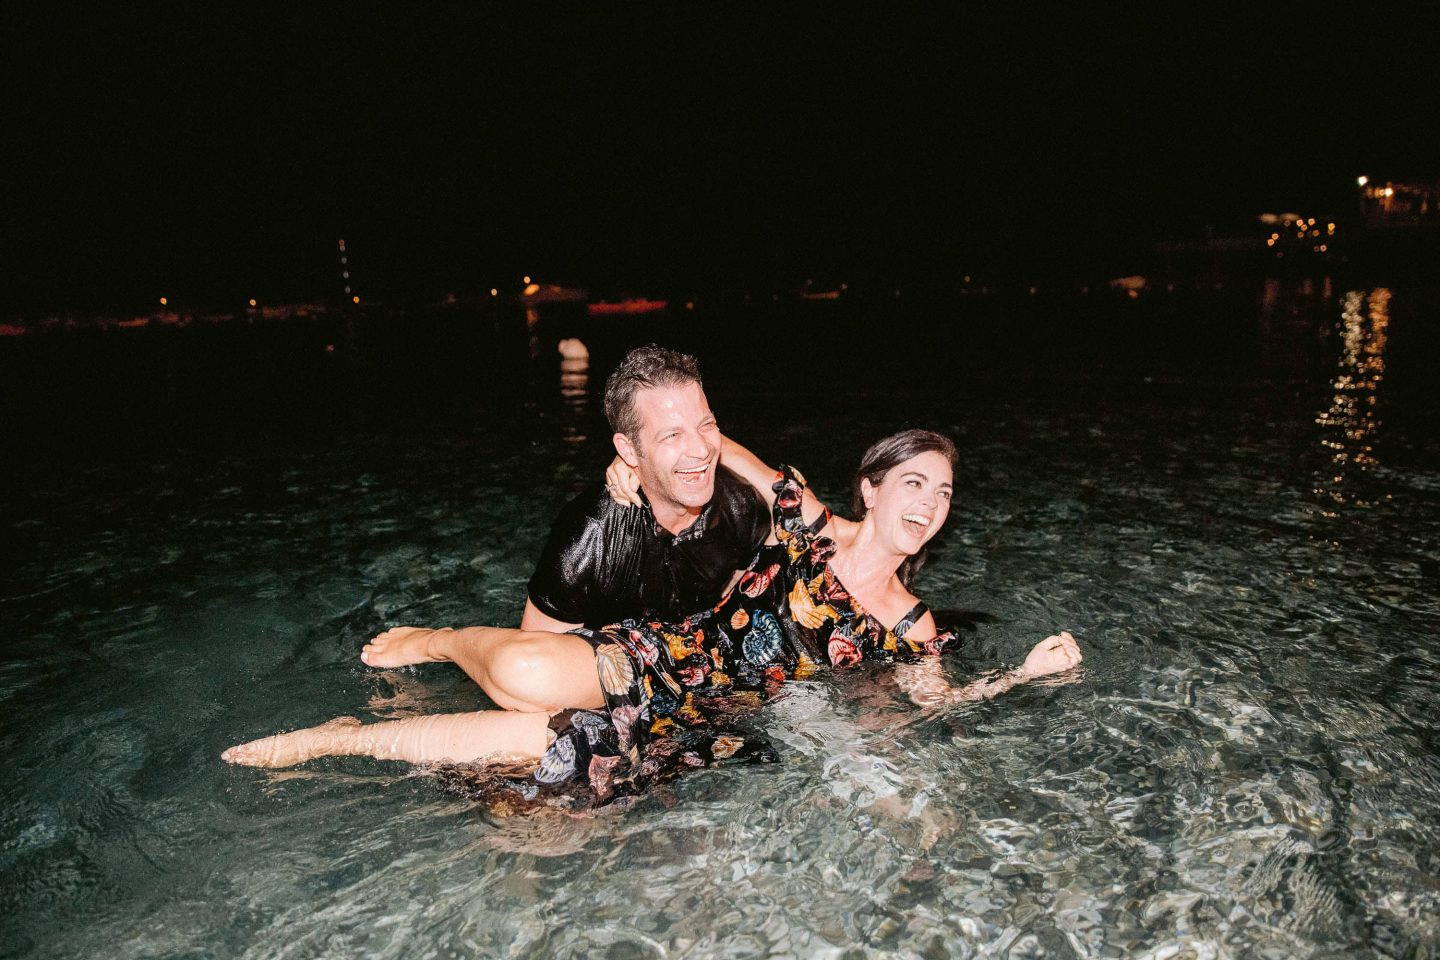 Bride and groom in the water at night at this Amalfi Coast wedding weekend held Lo Scoglio | Photo by Allan Zepeda